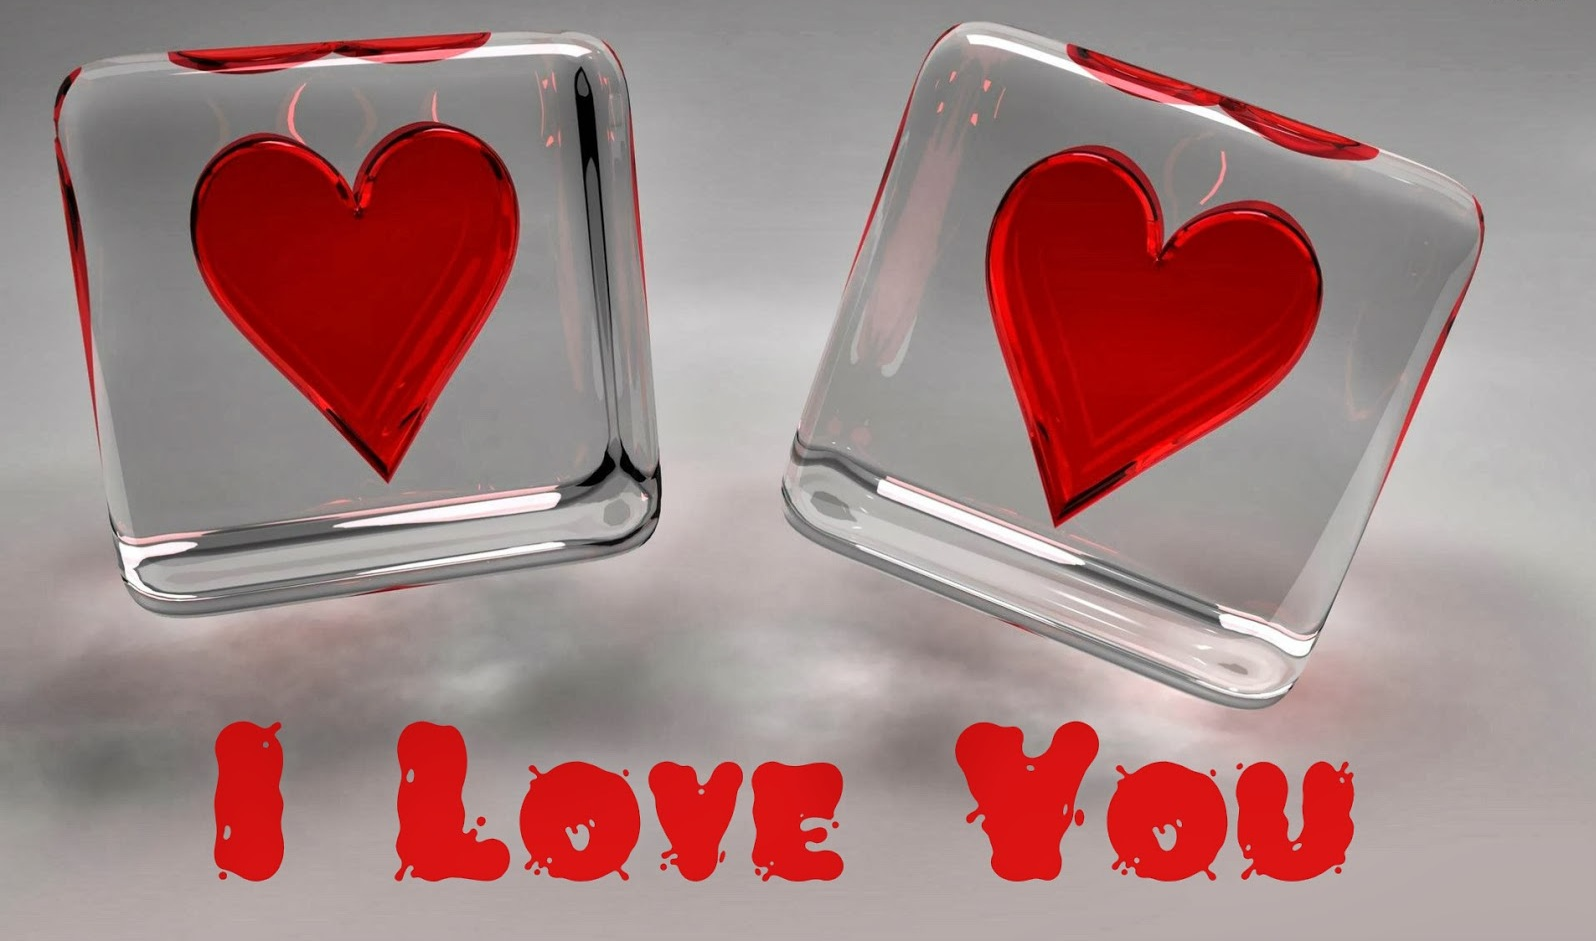 L Love You Hd Wallpaper : I Love You Wallpapers, Pictures, Images